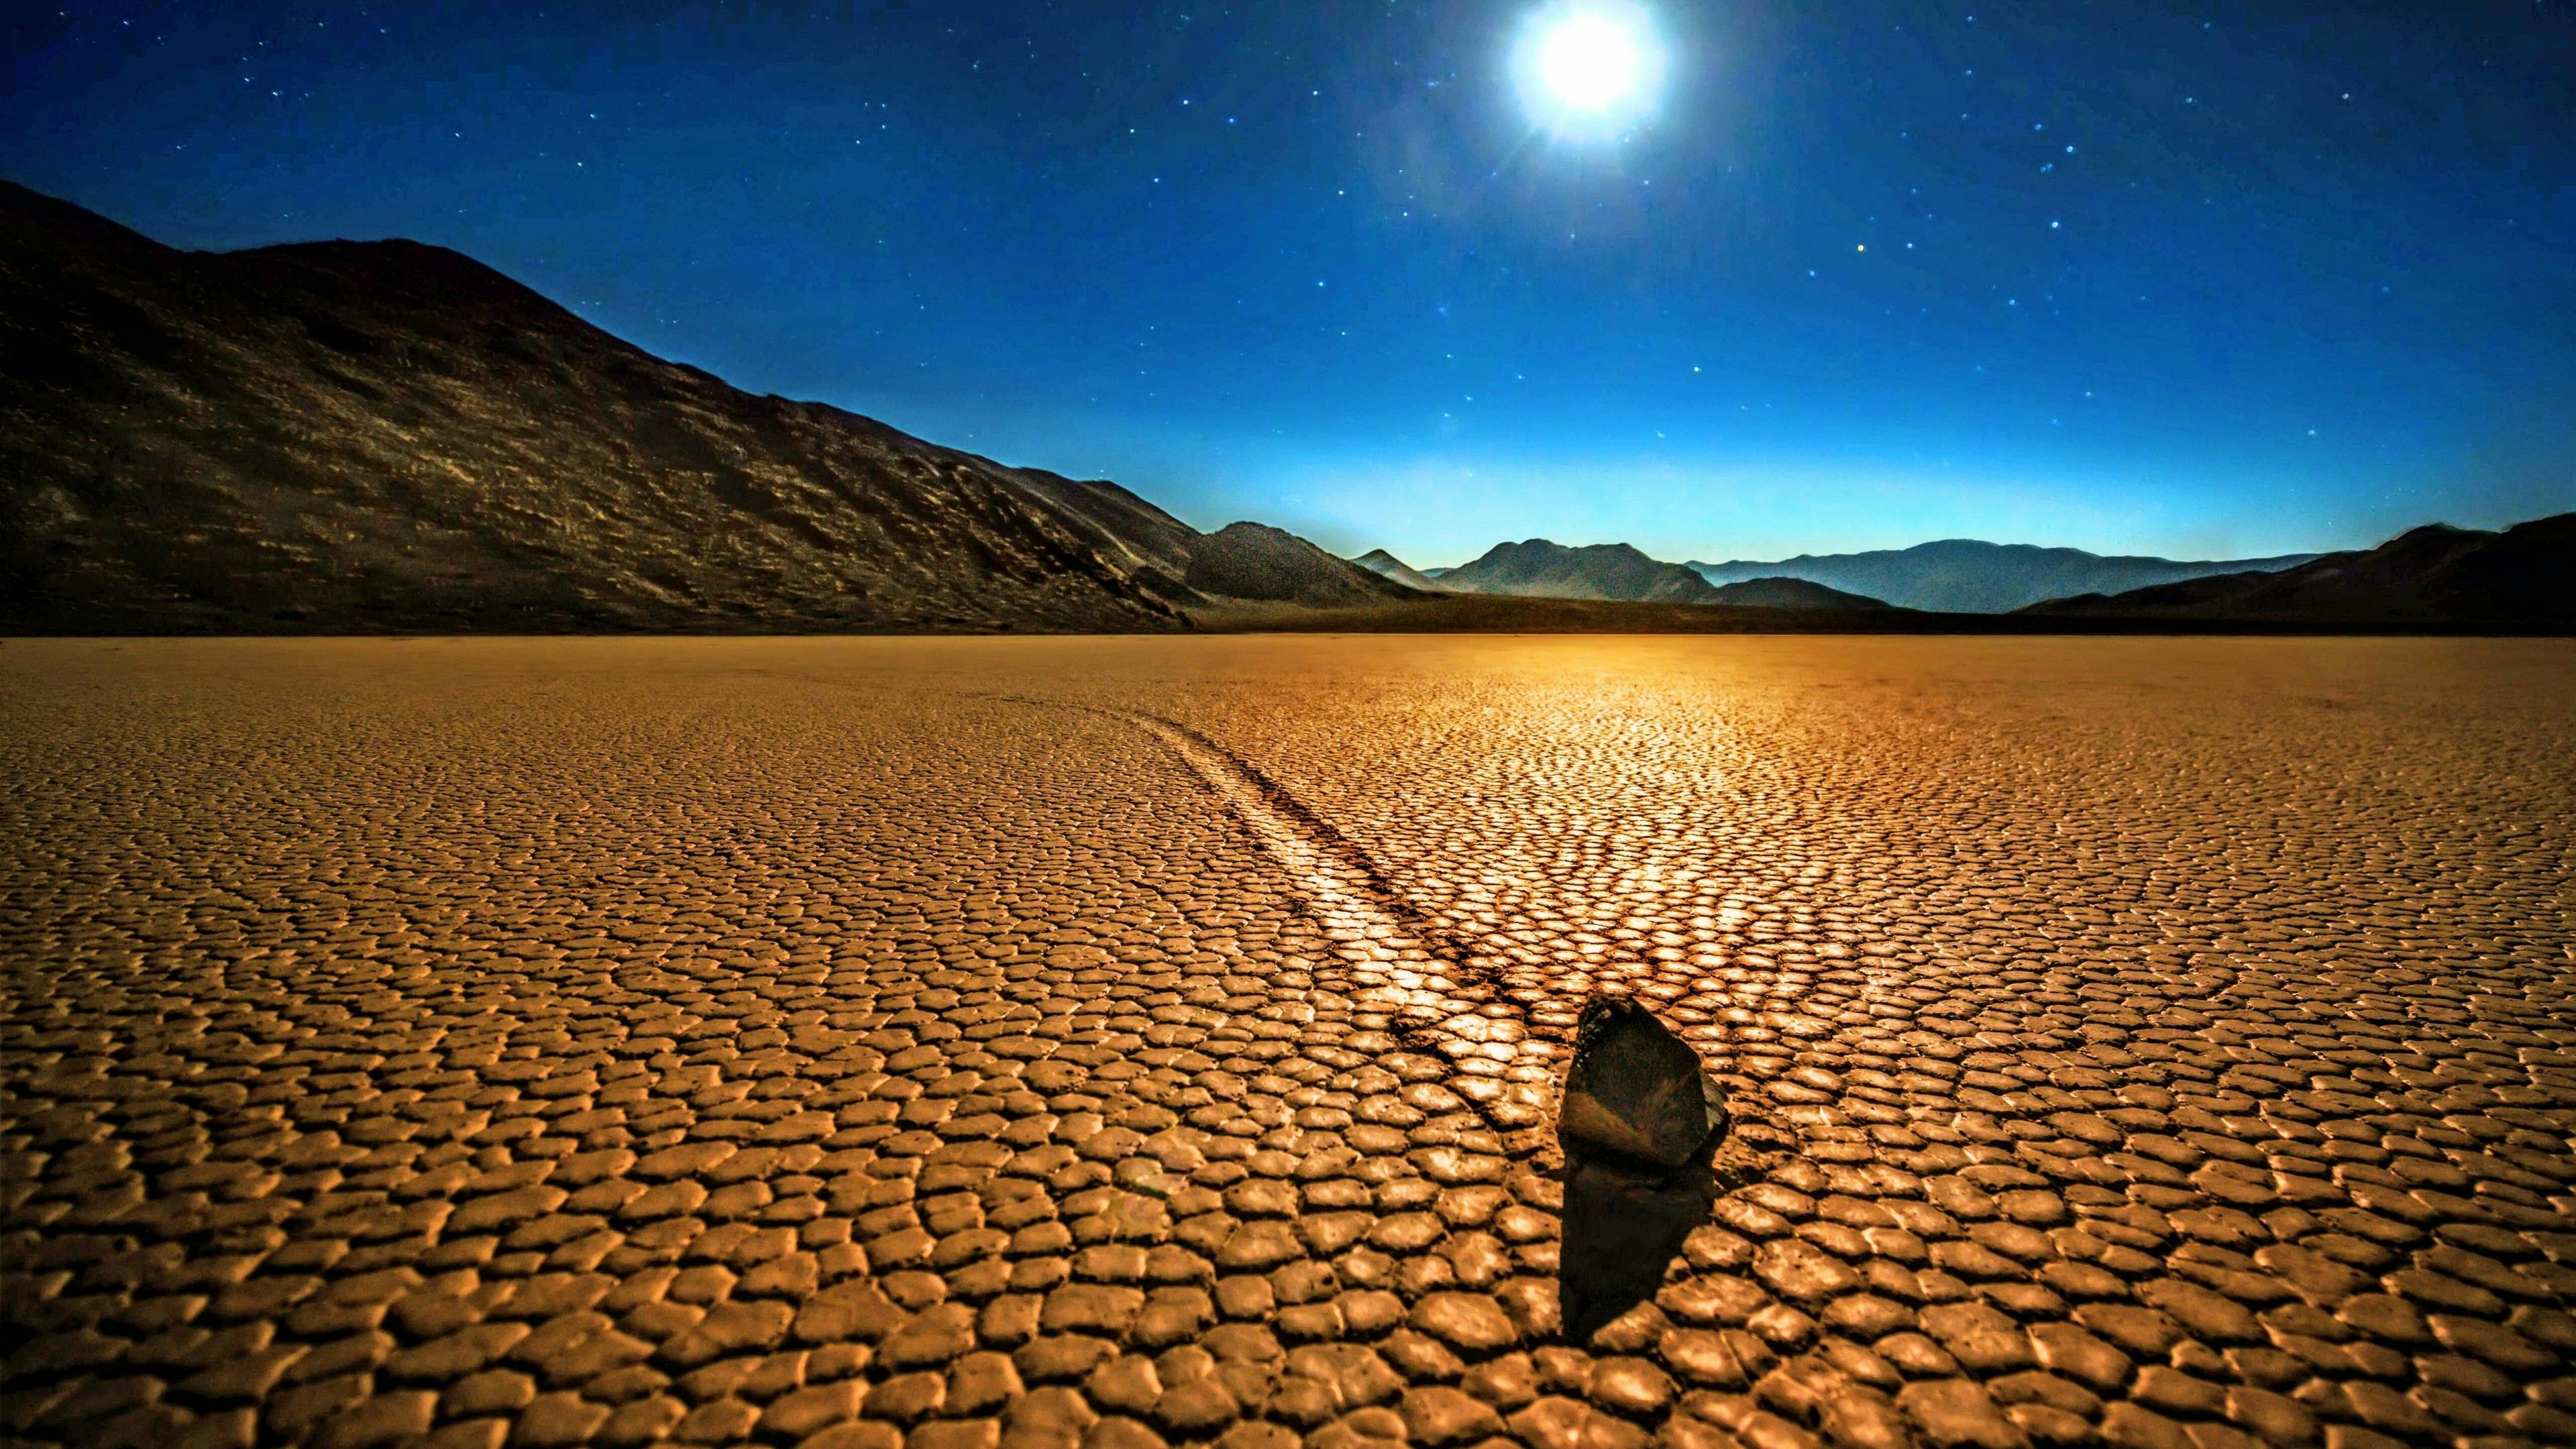 Sailing Stones In The Racetrack Playa, Death Valley National Park